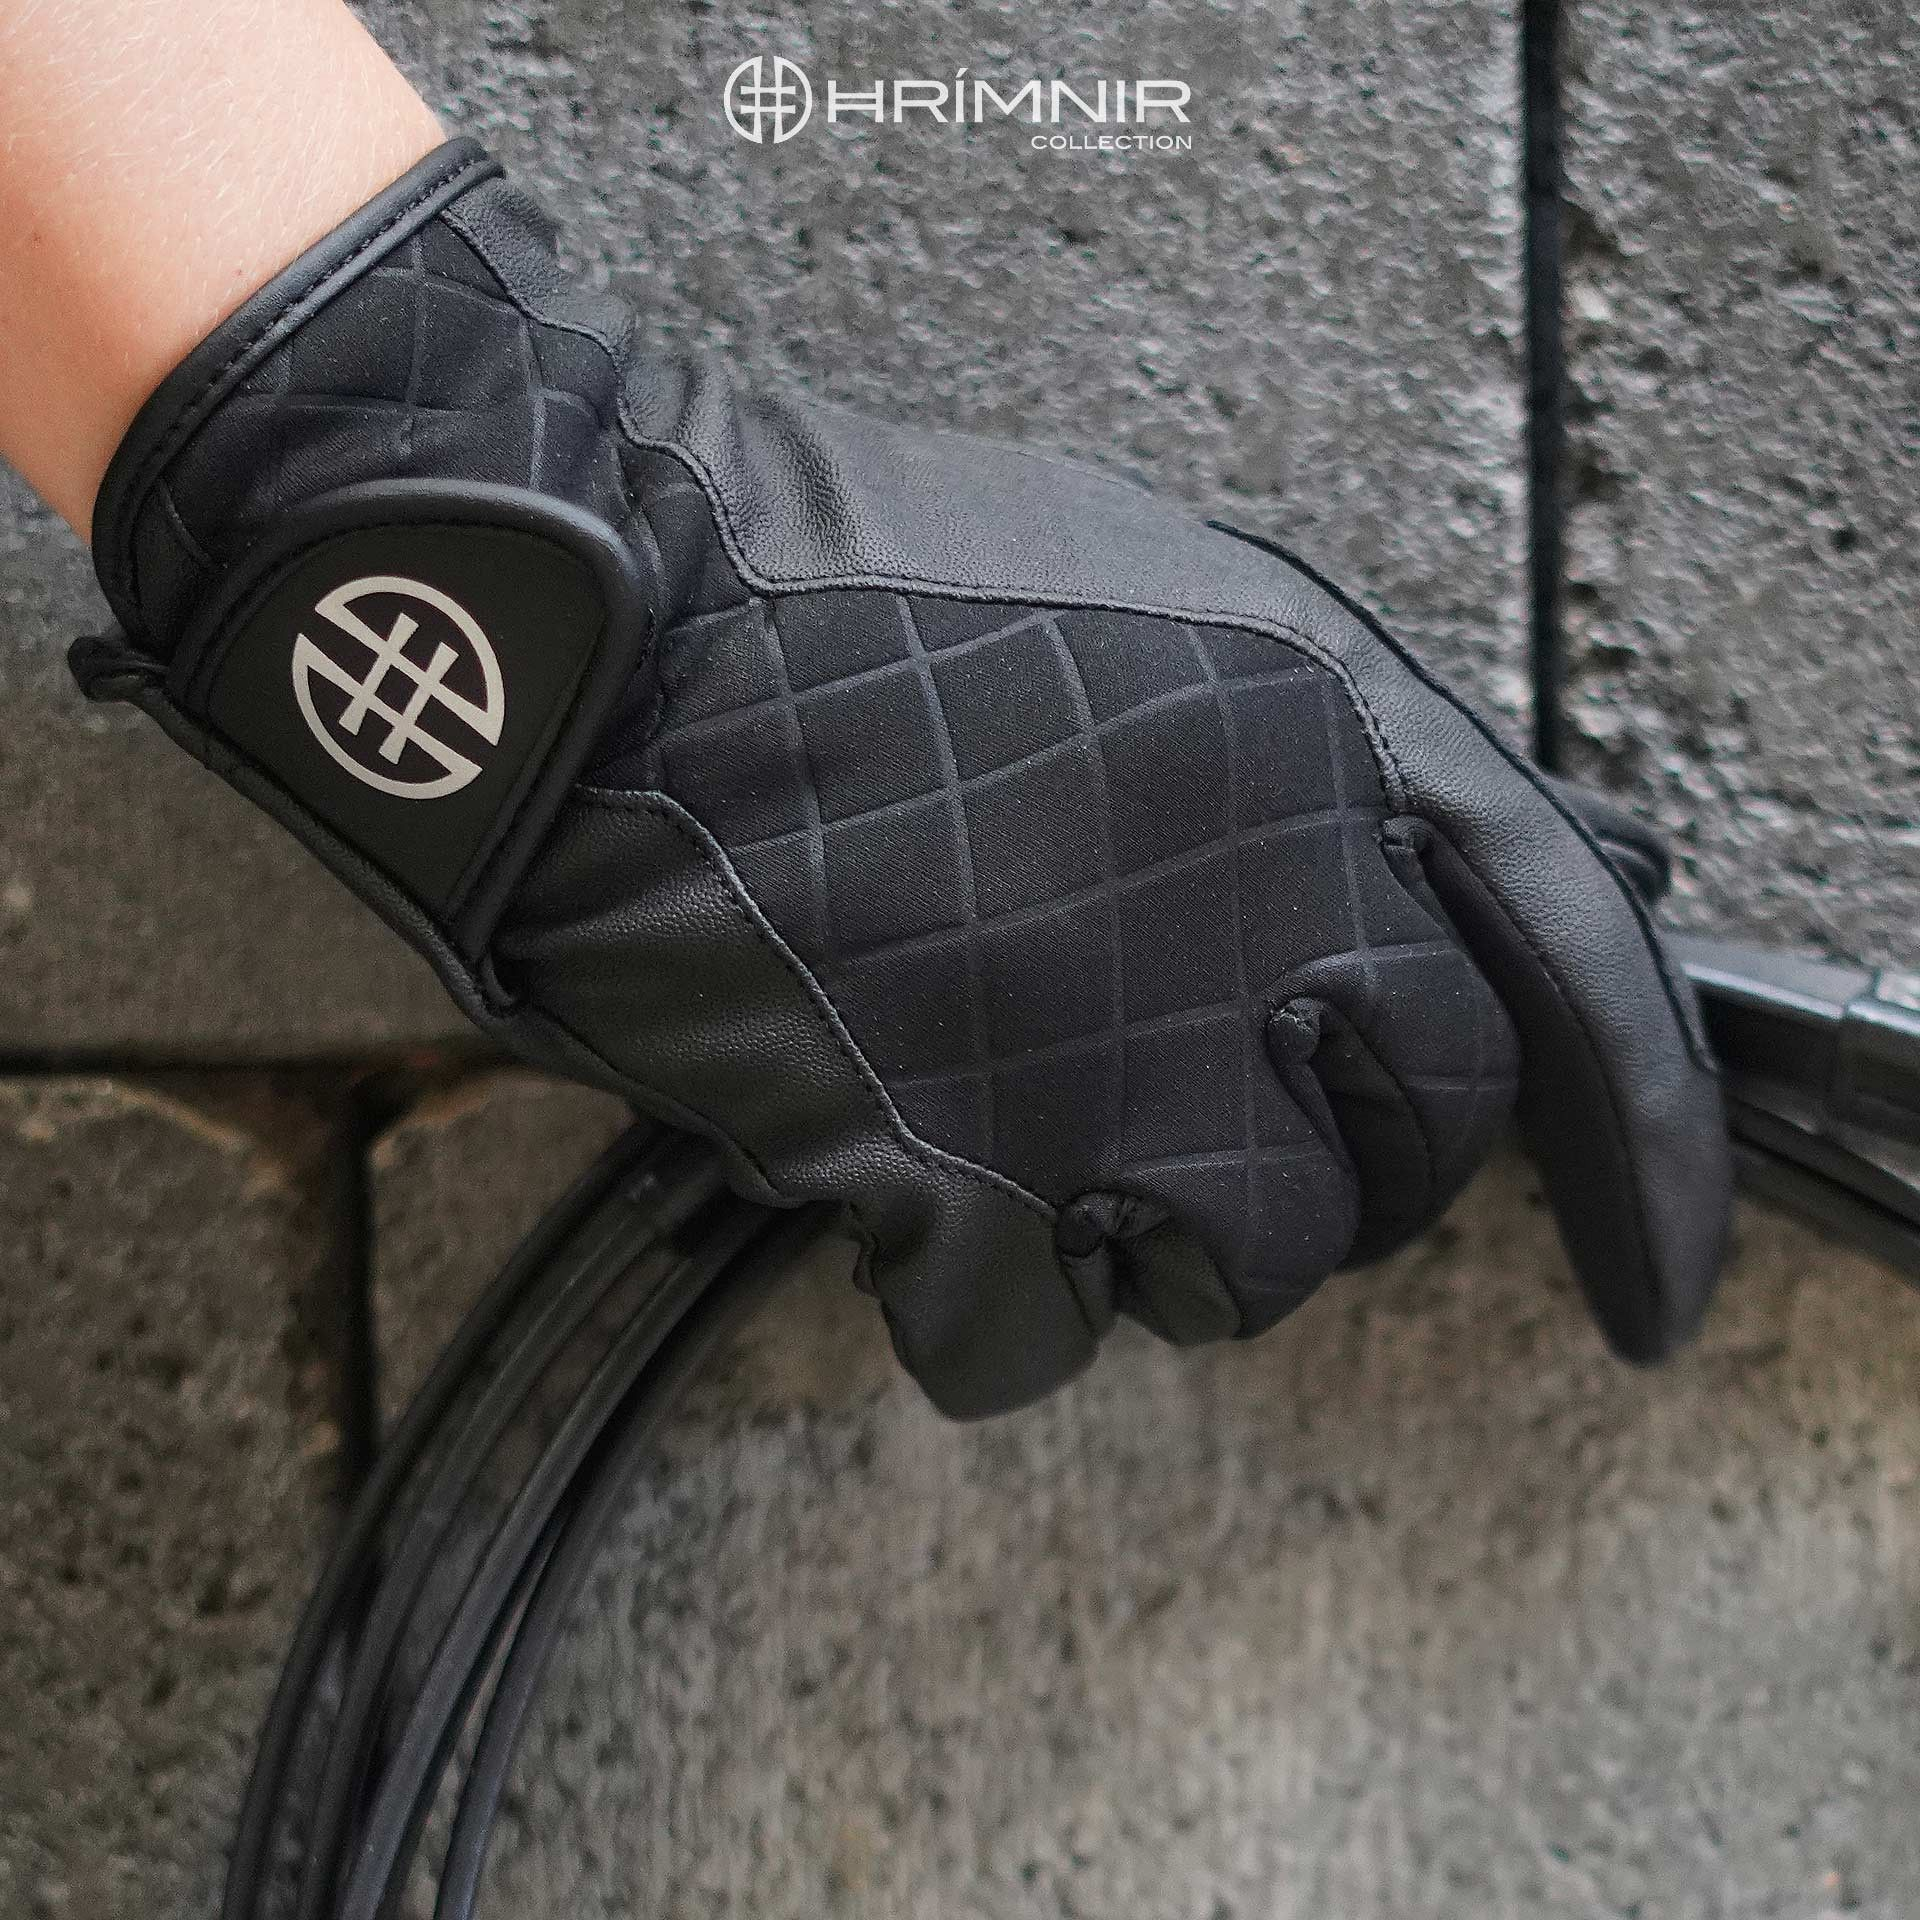 Hrimnir_geysir_grip_gloves_winter-gloves-3